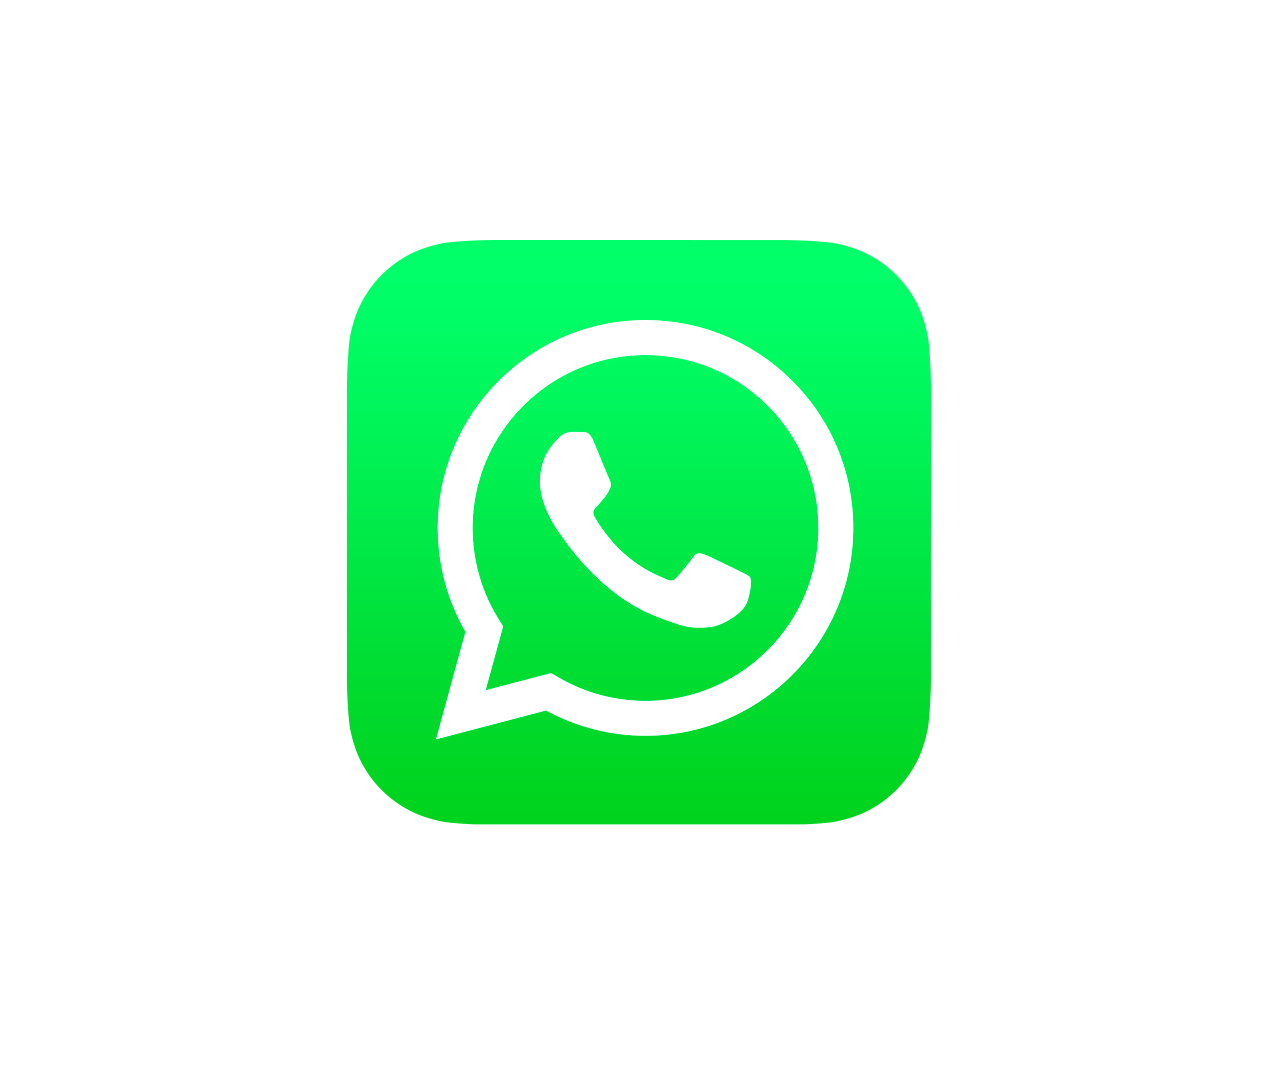 Ios transparent stickpng download. Whatsapp icon png